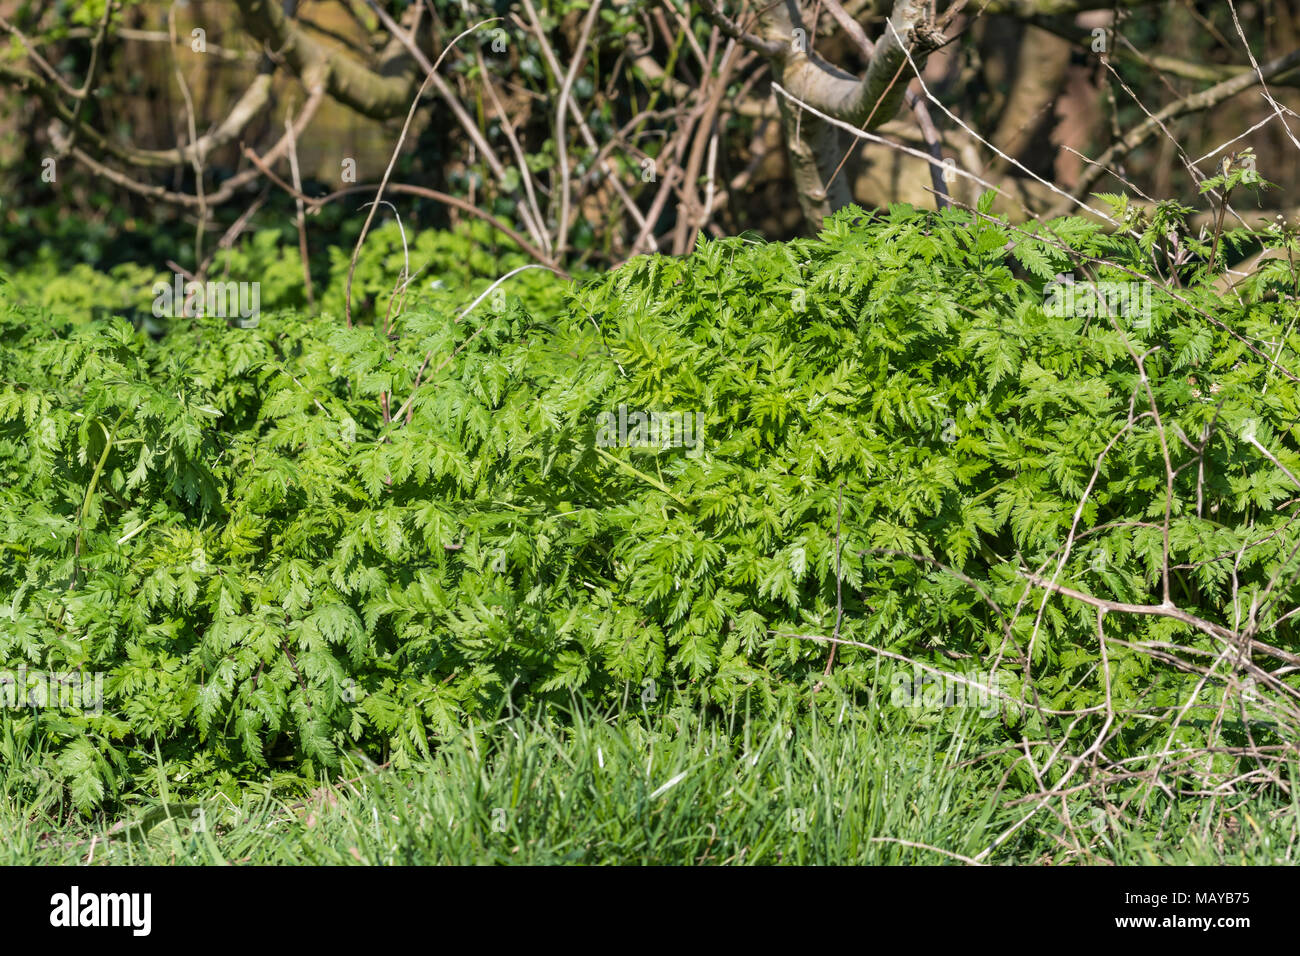 Cow Parsley (Anthriscus sylvestris, AKA Wild chervil, Wild beaked parsley, Keck) undergrowth growing in woodland under trees in Spring in the UK. - Stock Image